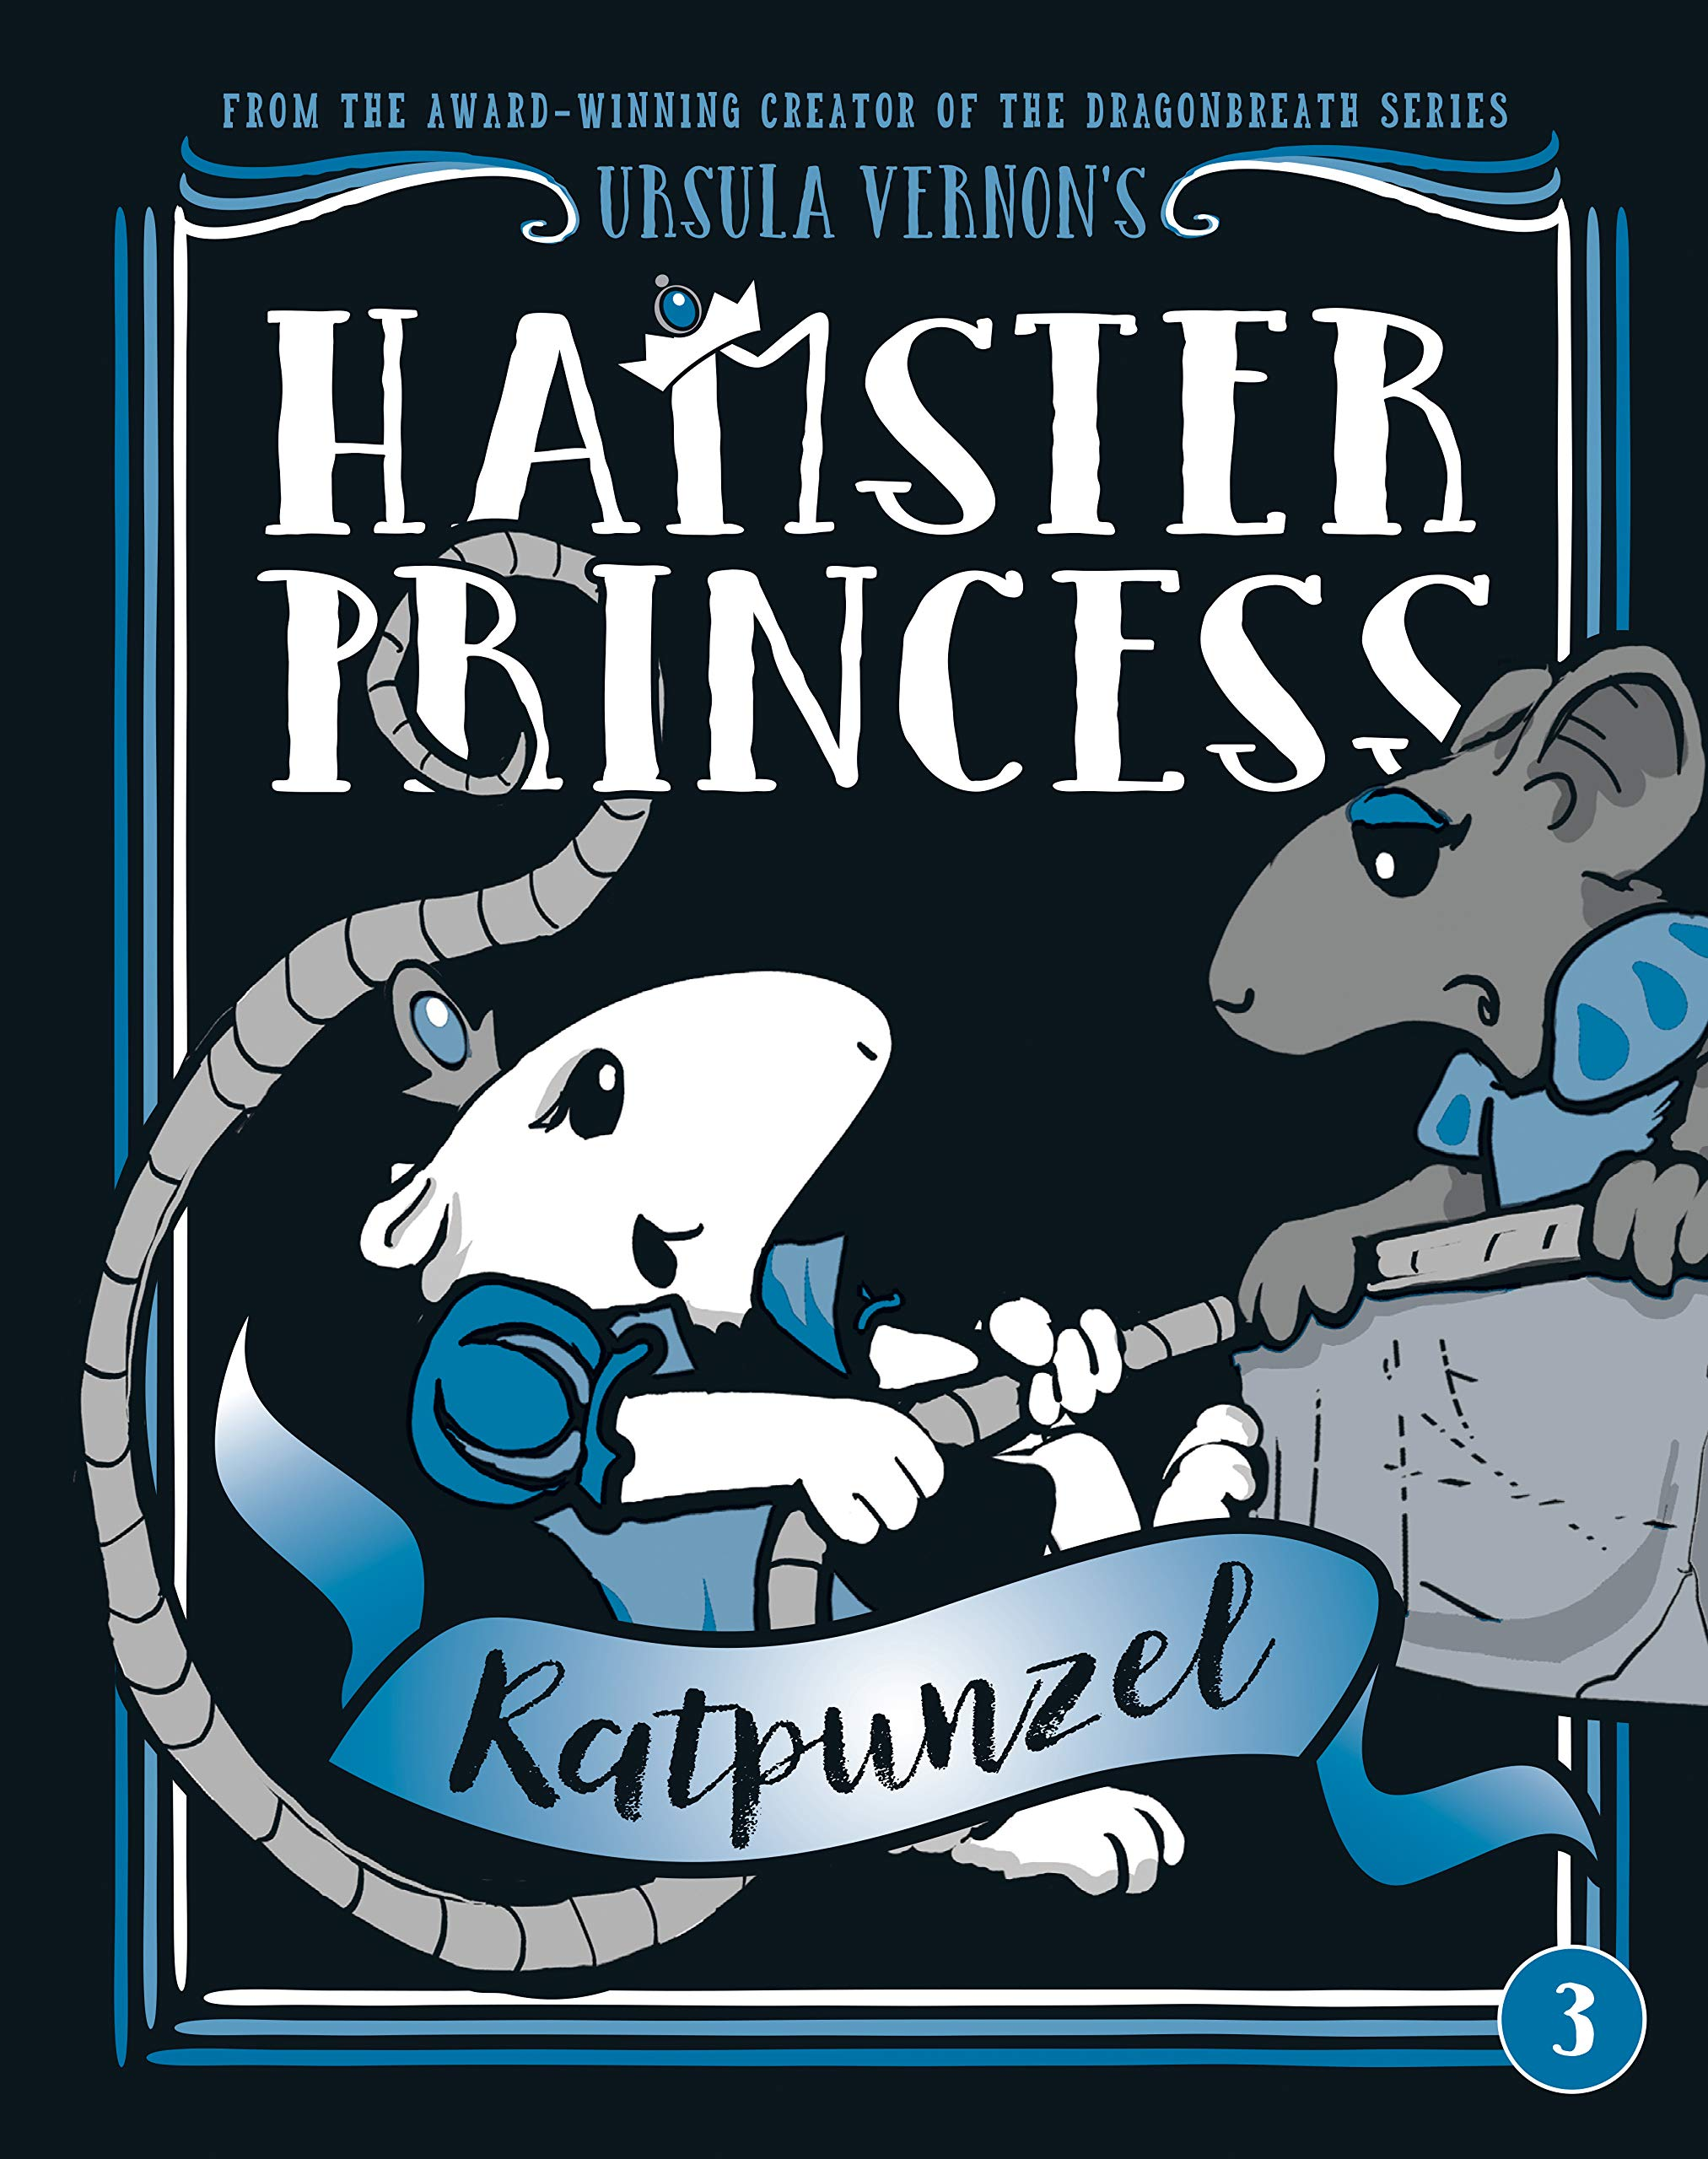 Amazon.com: Hamster Princess: Ratpunzel (9780803739857 ...